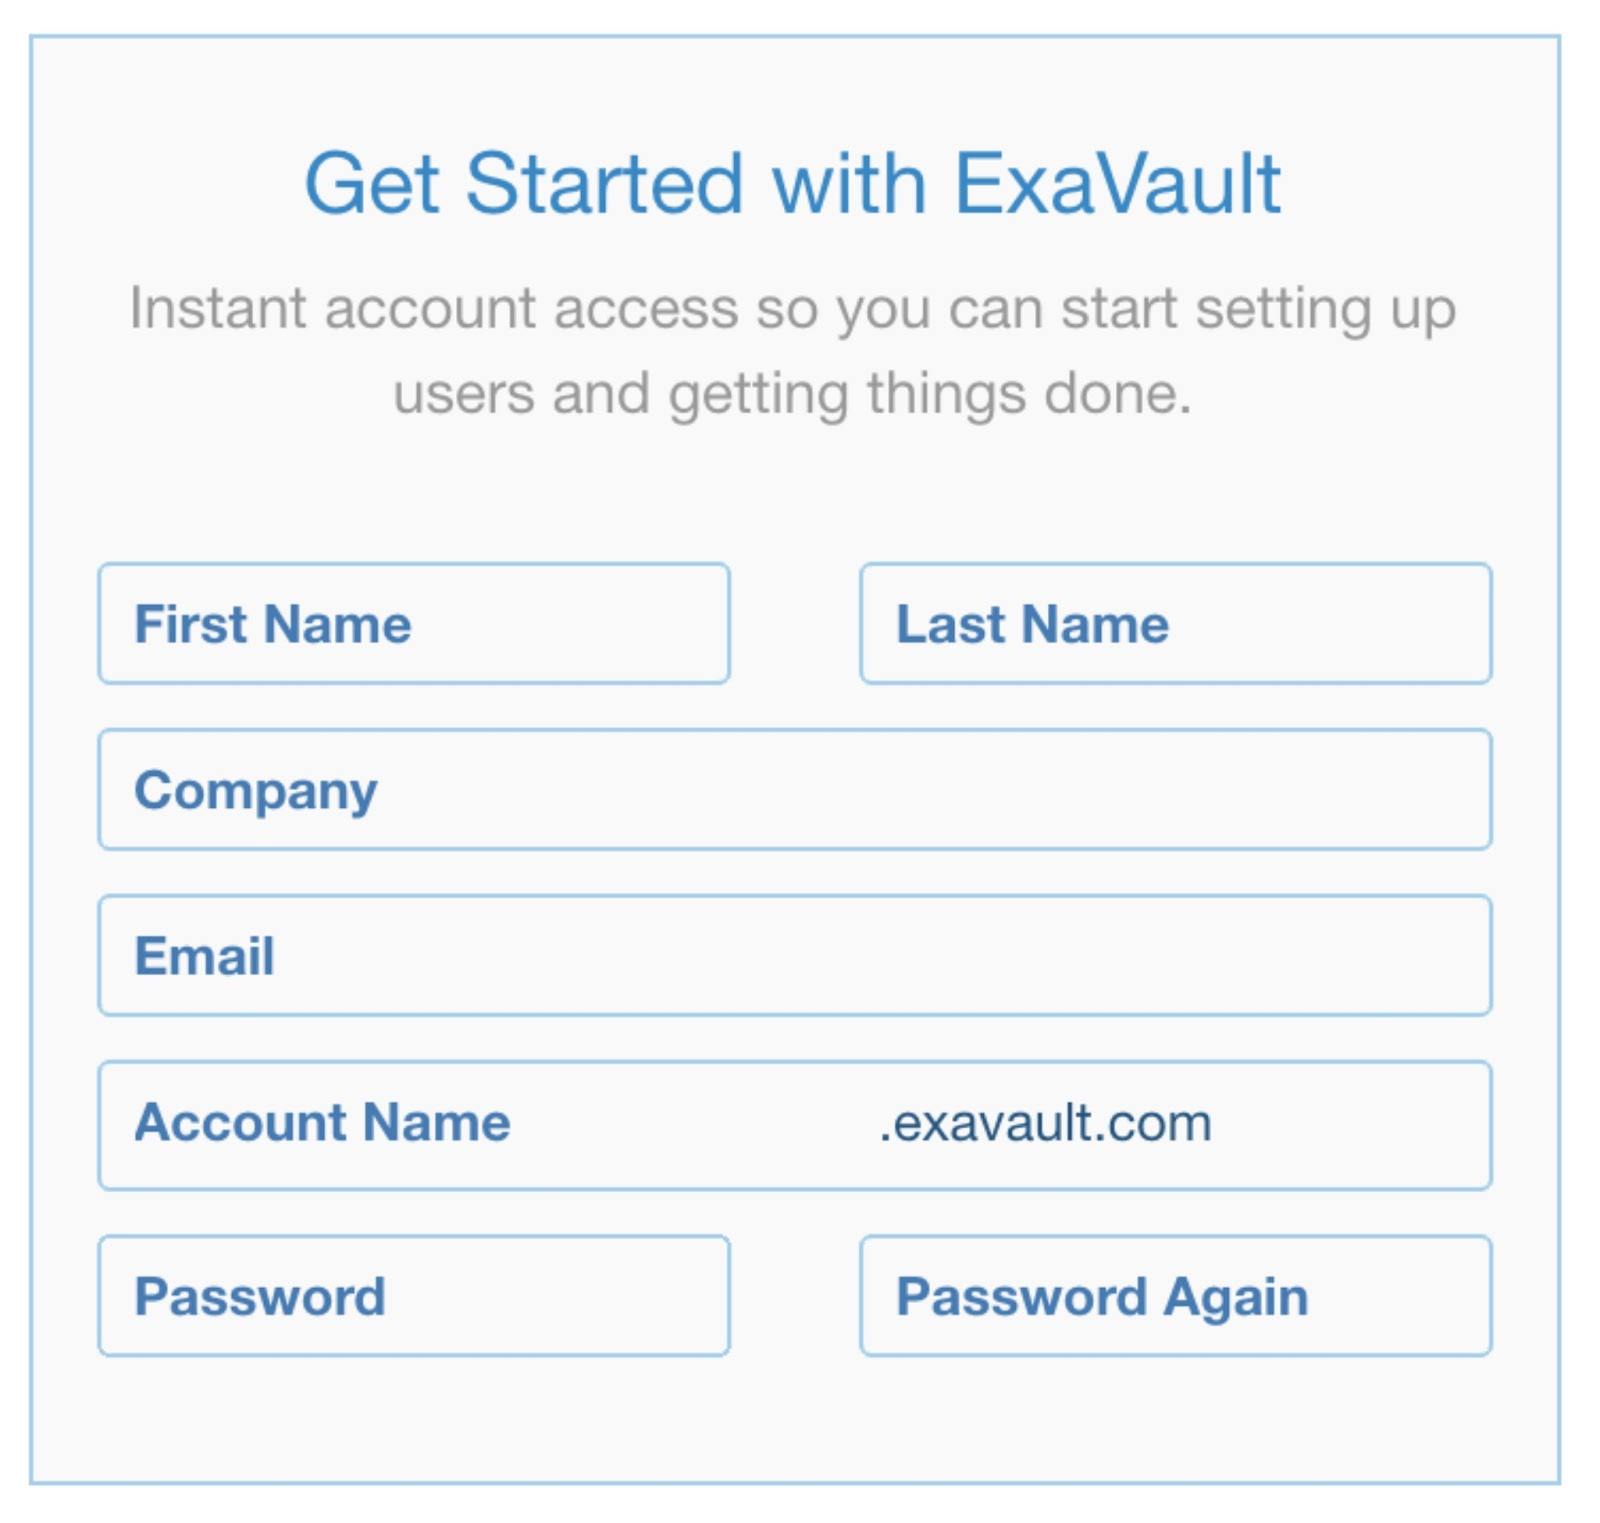 Sign up form to get started with your ExaVault FTP site.